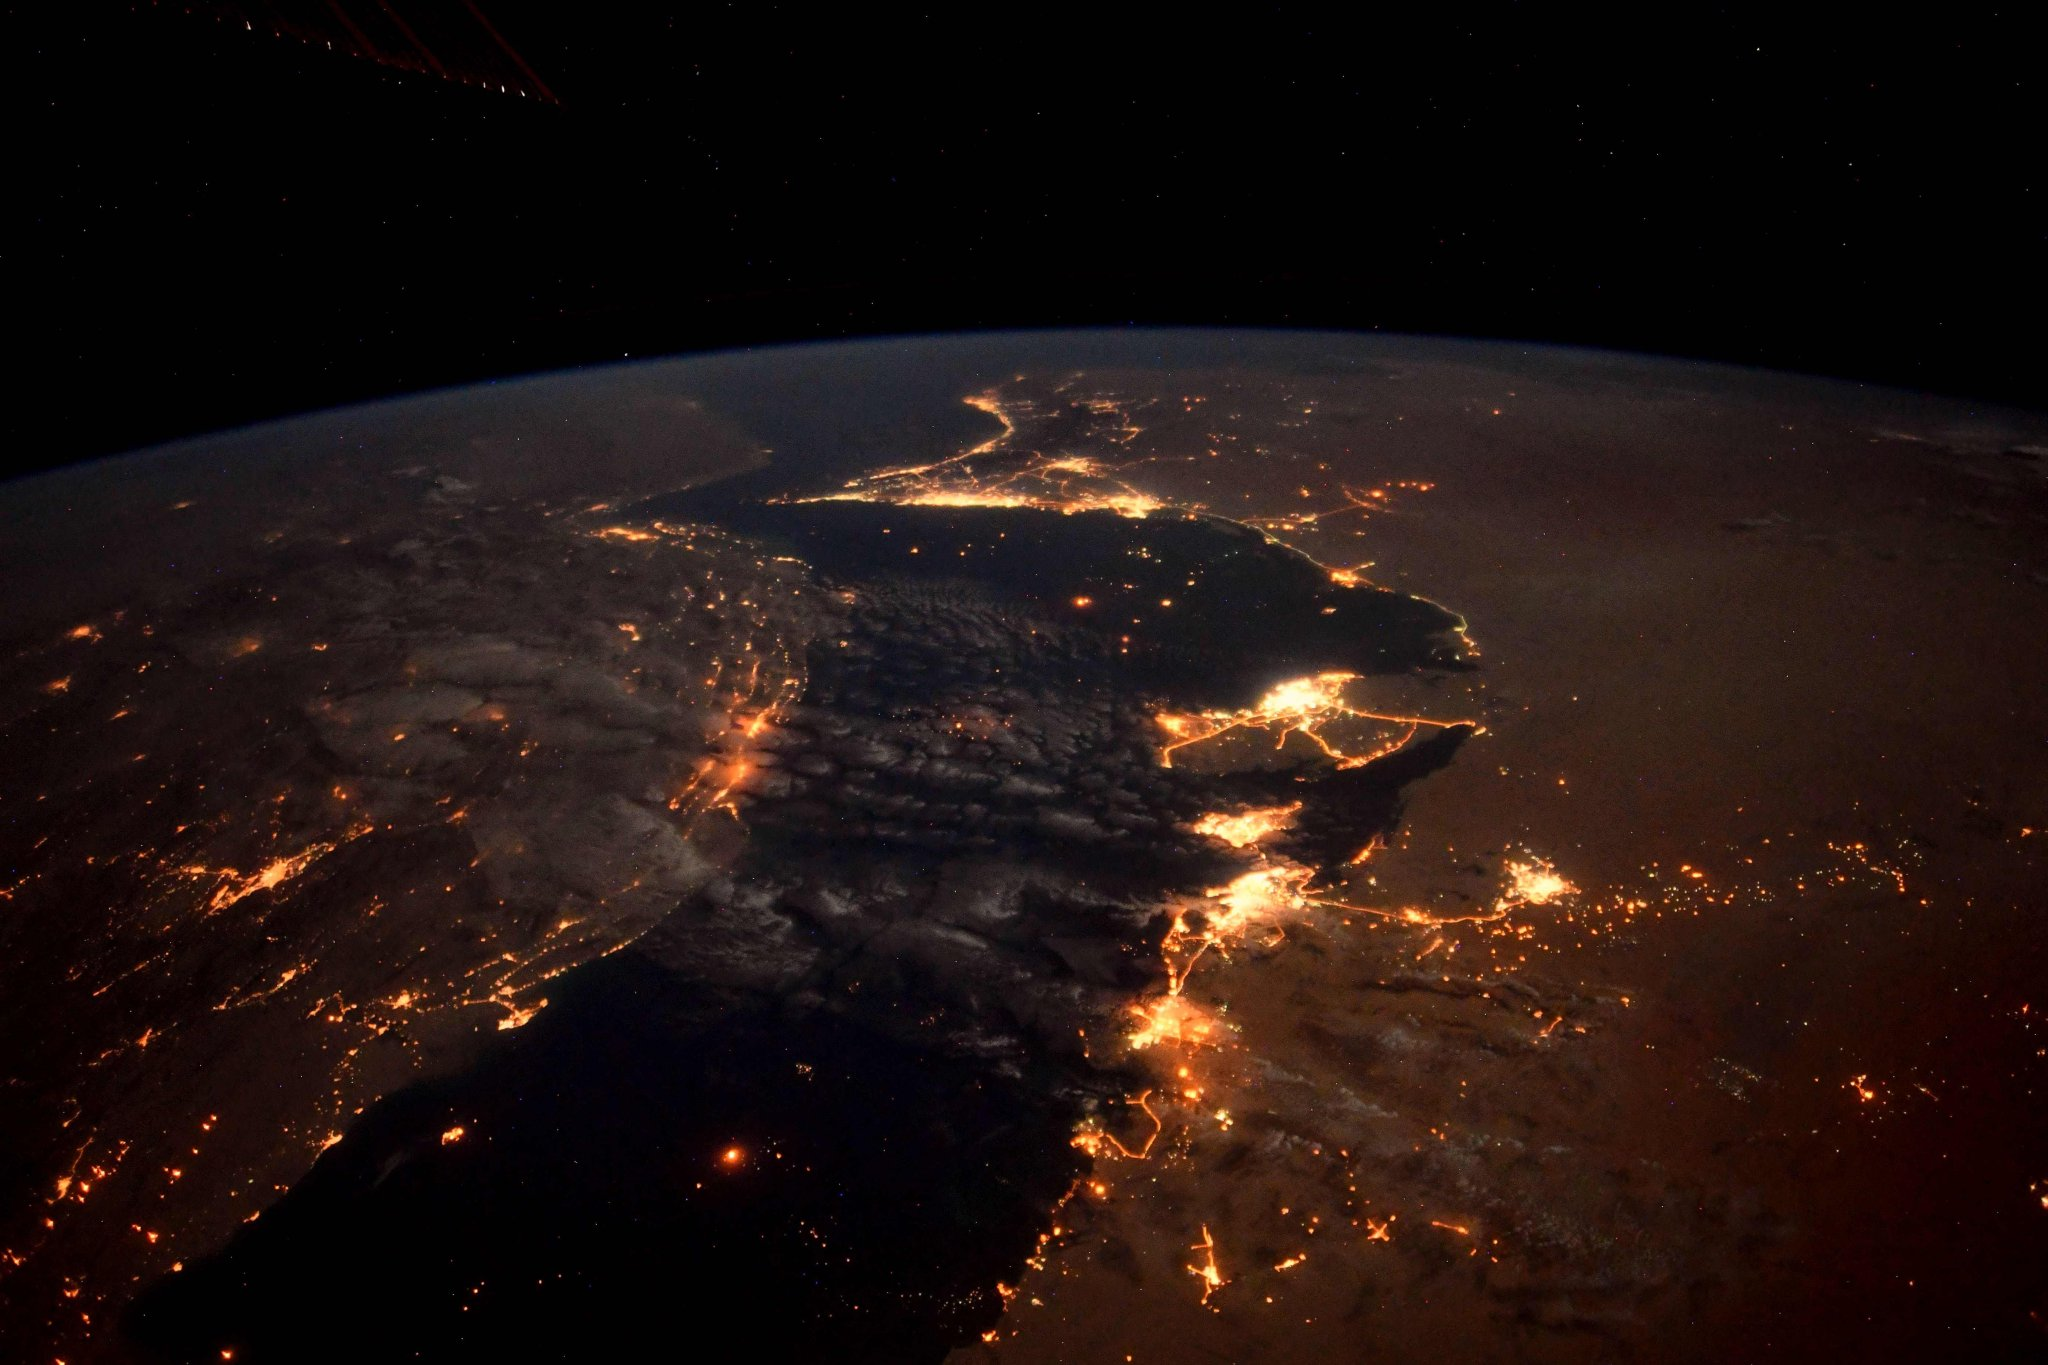 Even the dark of night cannot subdue the rich hues of the desert bordering the Persian Gulf. #Qatar #Dubai #AbuDhabi #Oman #Iran #SaudiArabia #Bahrain #UAE (Photo & Caption: Ricky Arnold / NASA)